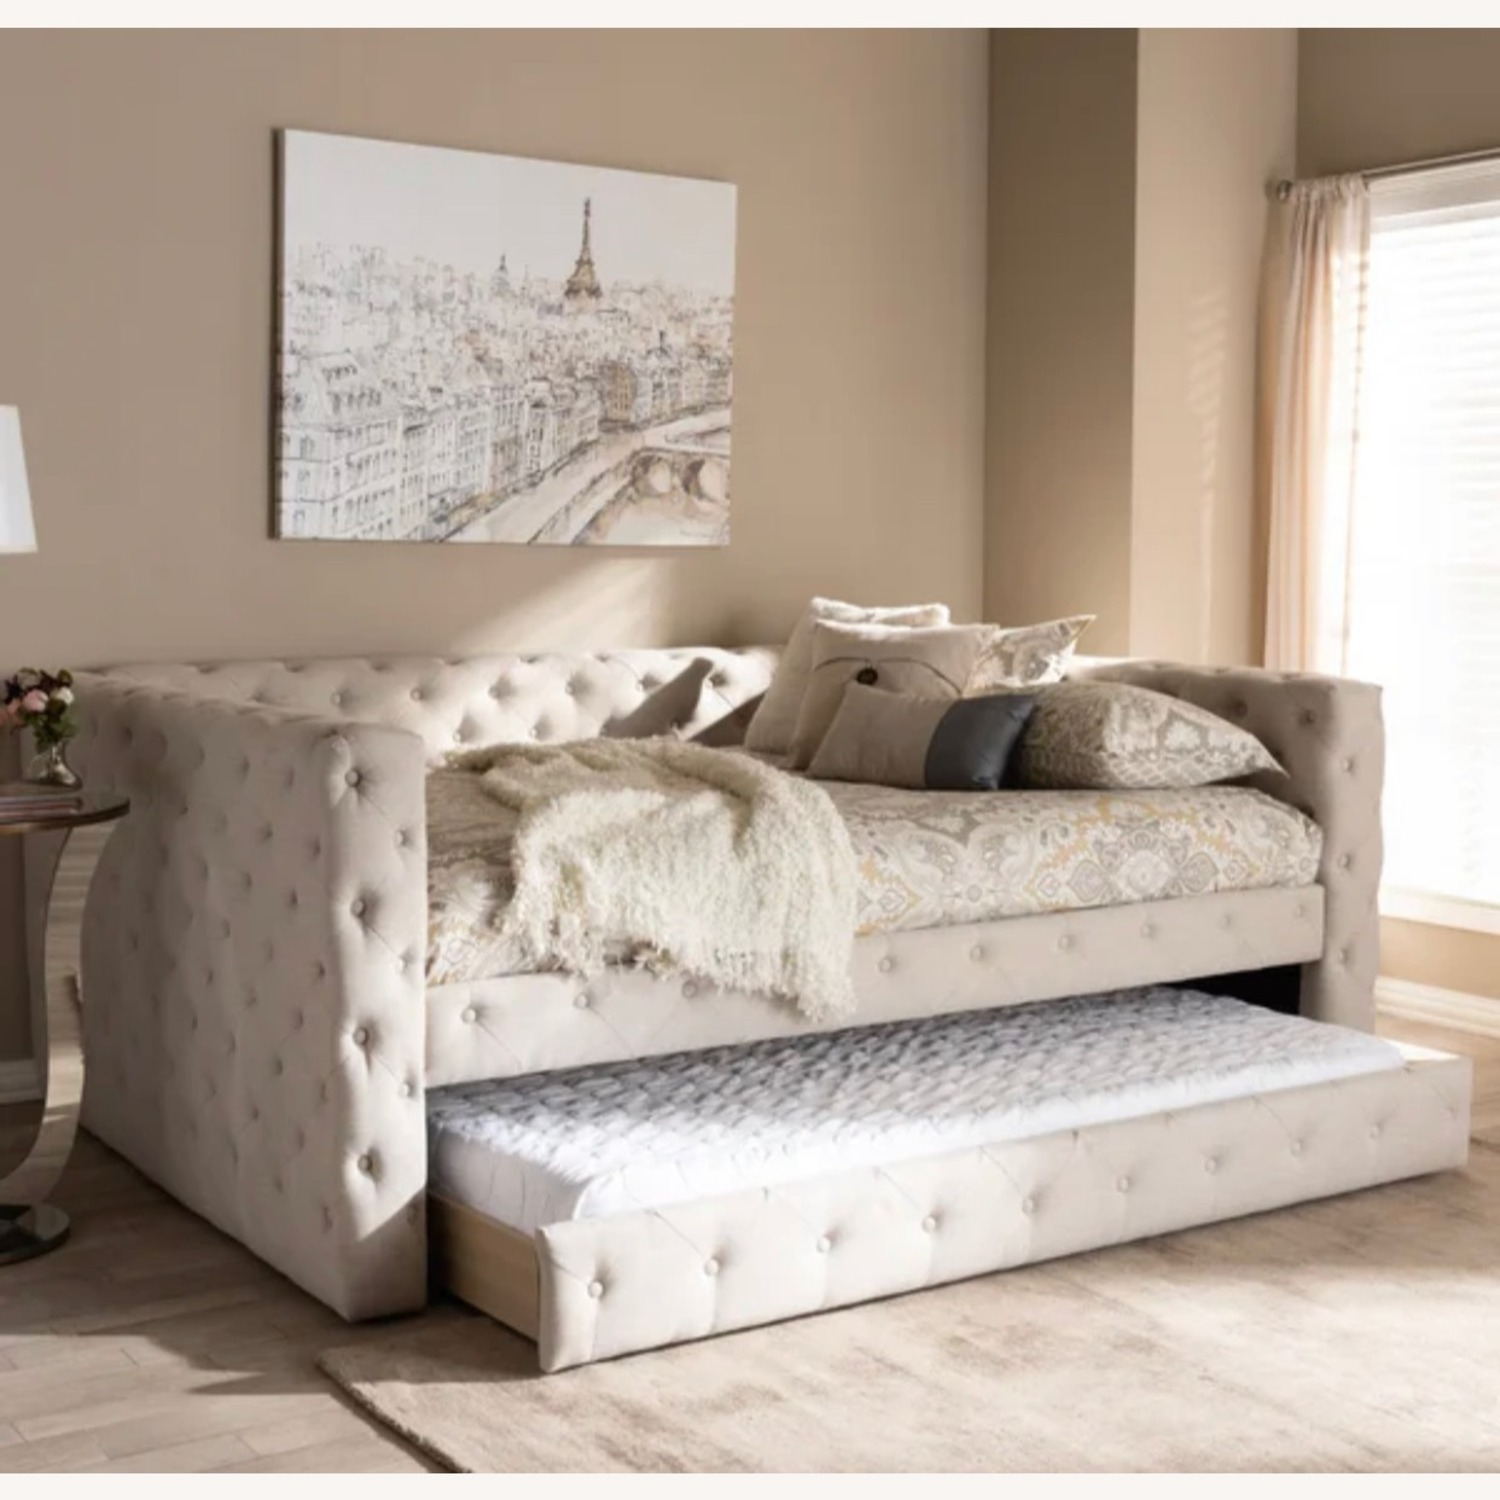 Wayfair Beacon Daybed with Trundle - image-1